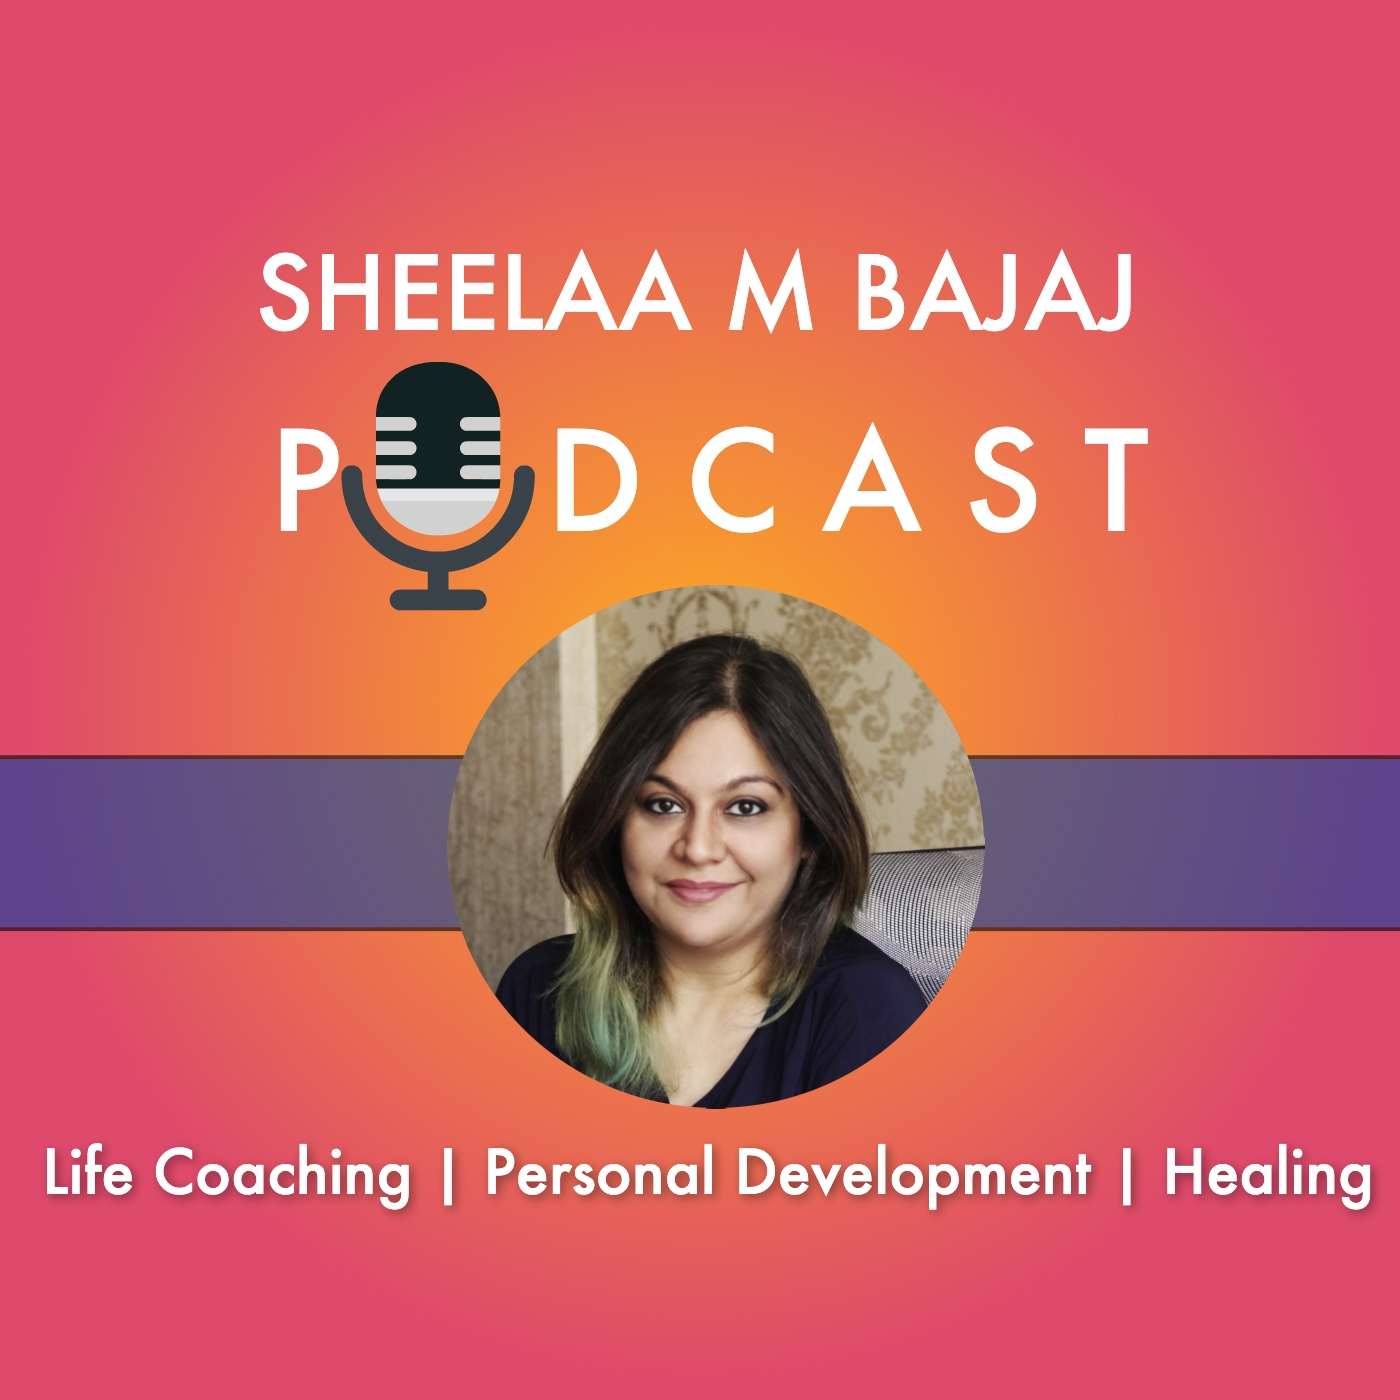 Sheelaa M Bajaj Podcast: A Personal Development Podcast